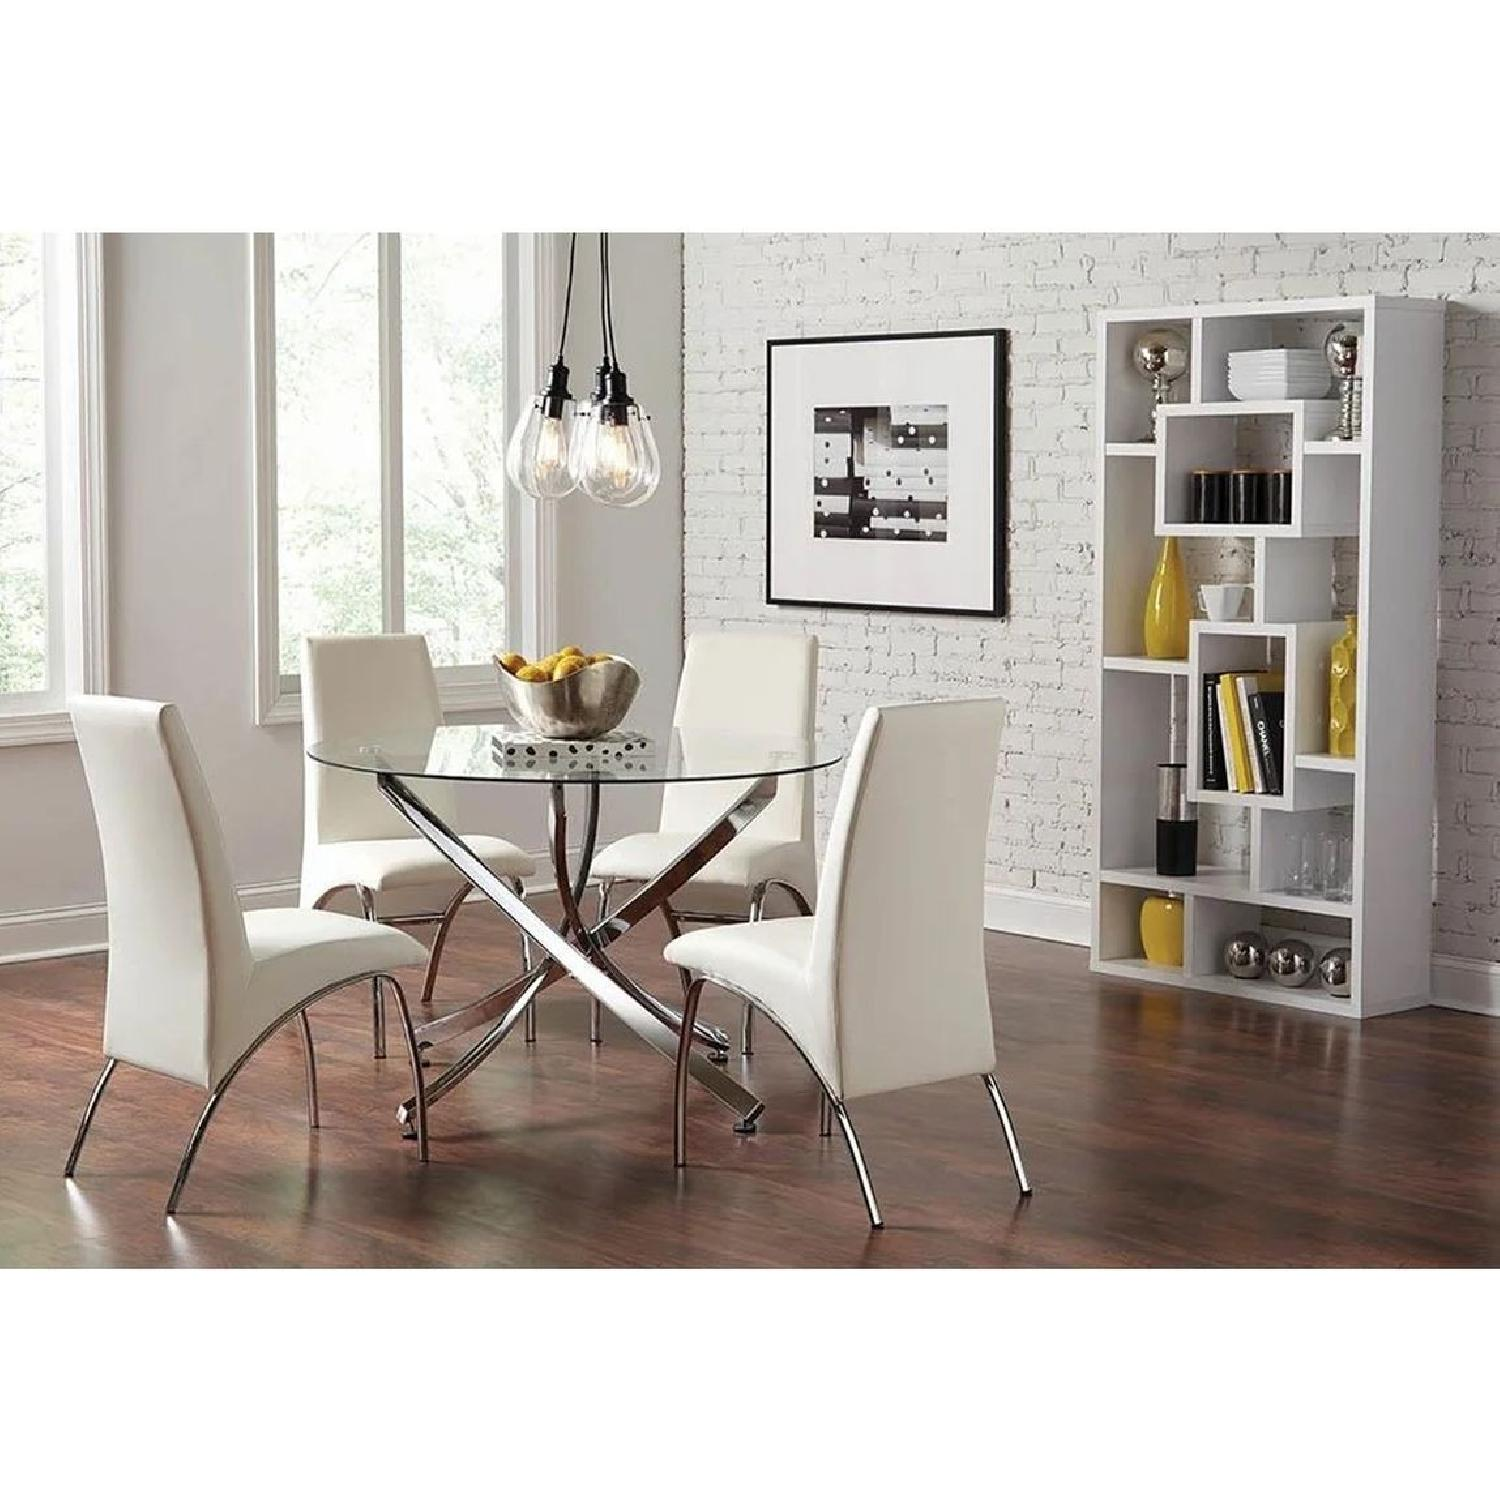 Modern Dining Chair in White Leatherette w/ Chrome Legs - image-2